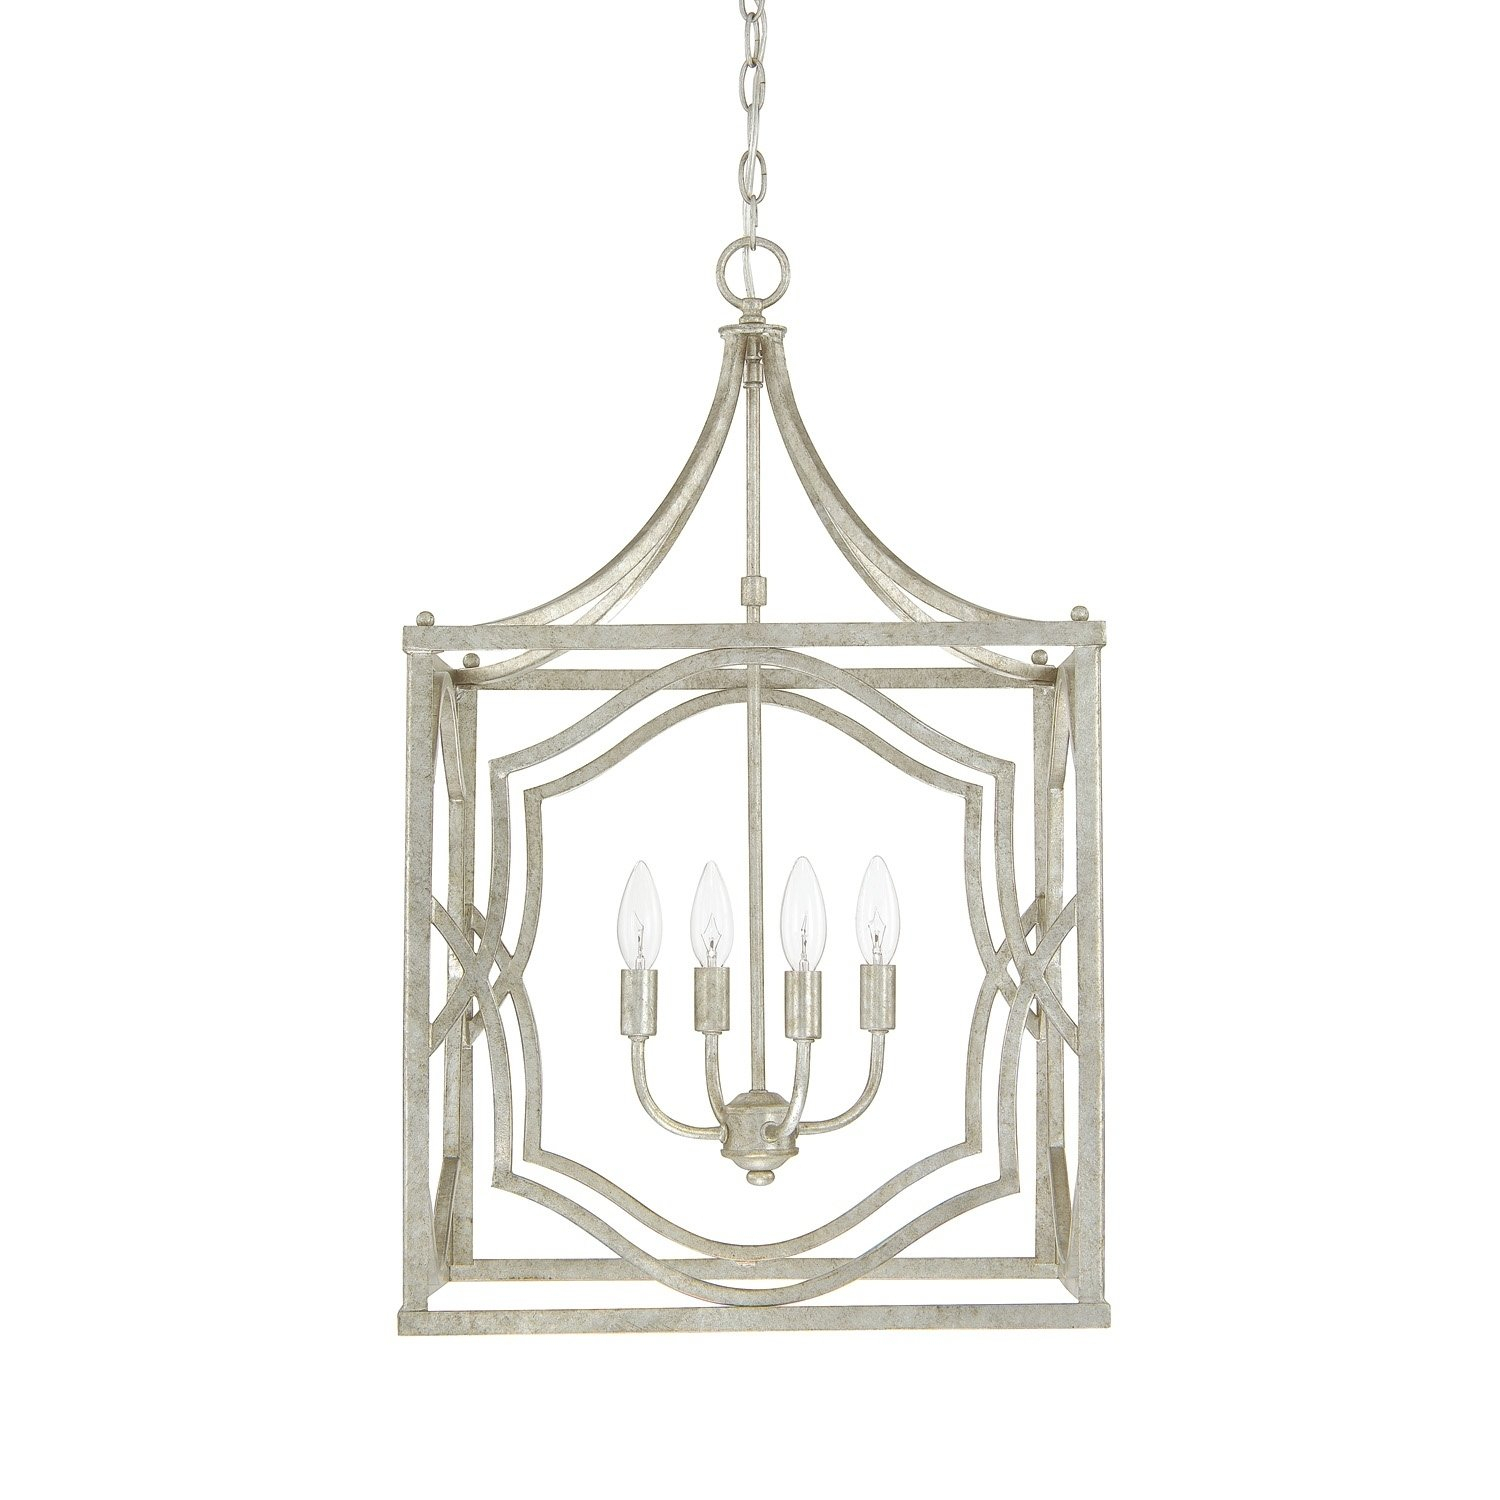 Blakely 4-Light Antique Silver Foyer Fixture - Antique in Oriana 4-Light Single Geometric Chandeliers (Image 6 of 30)